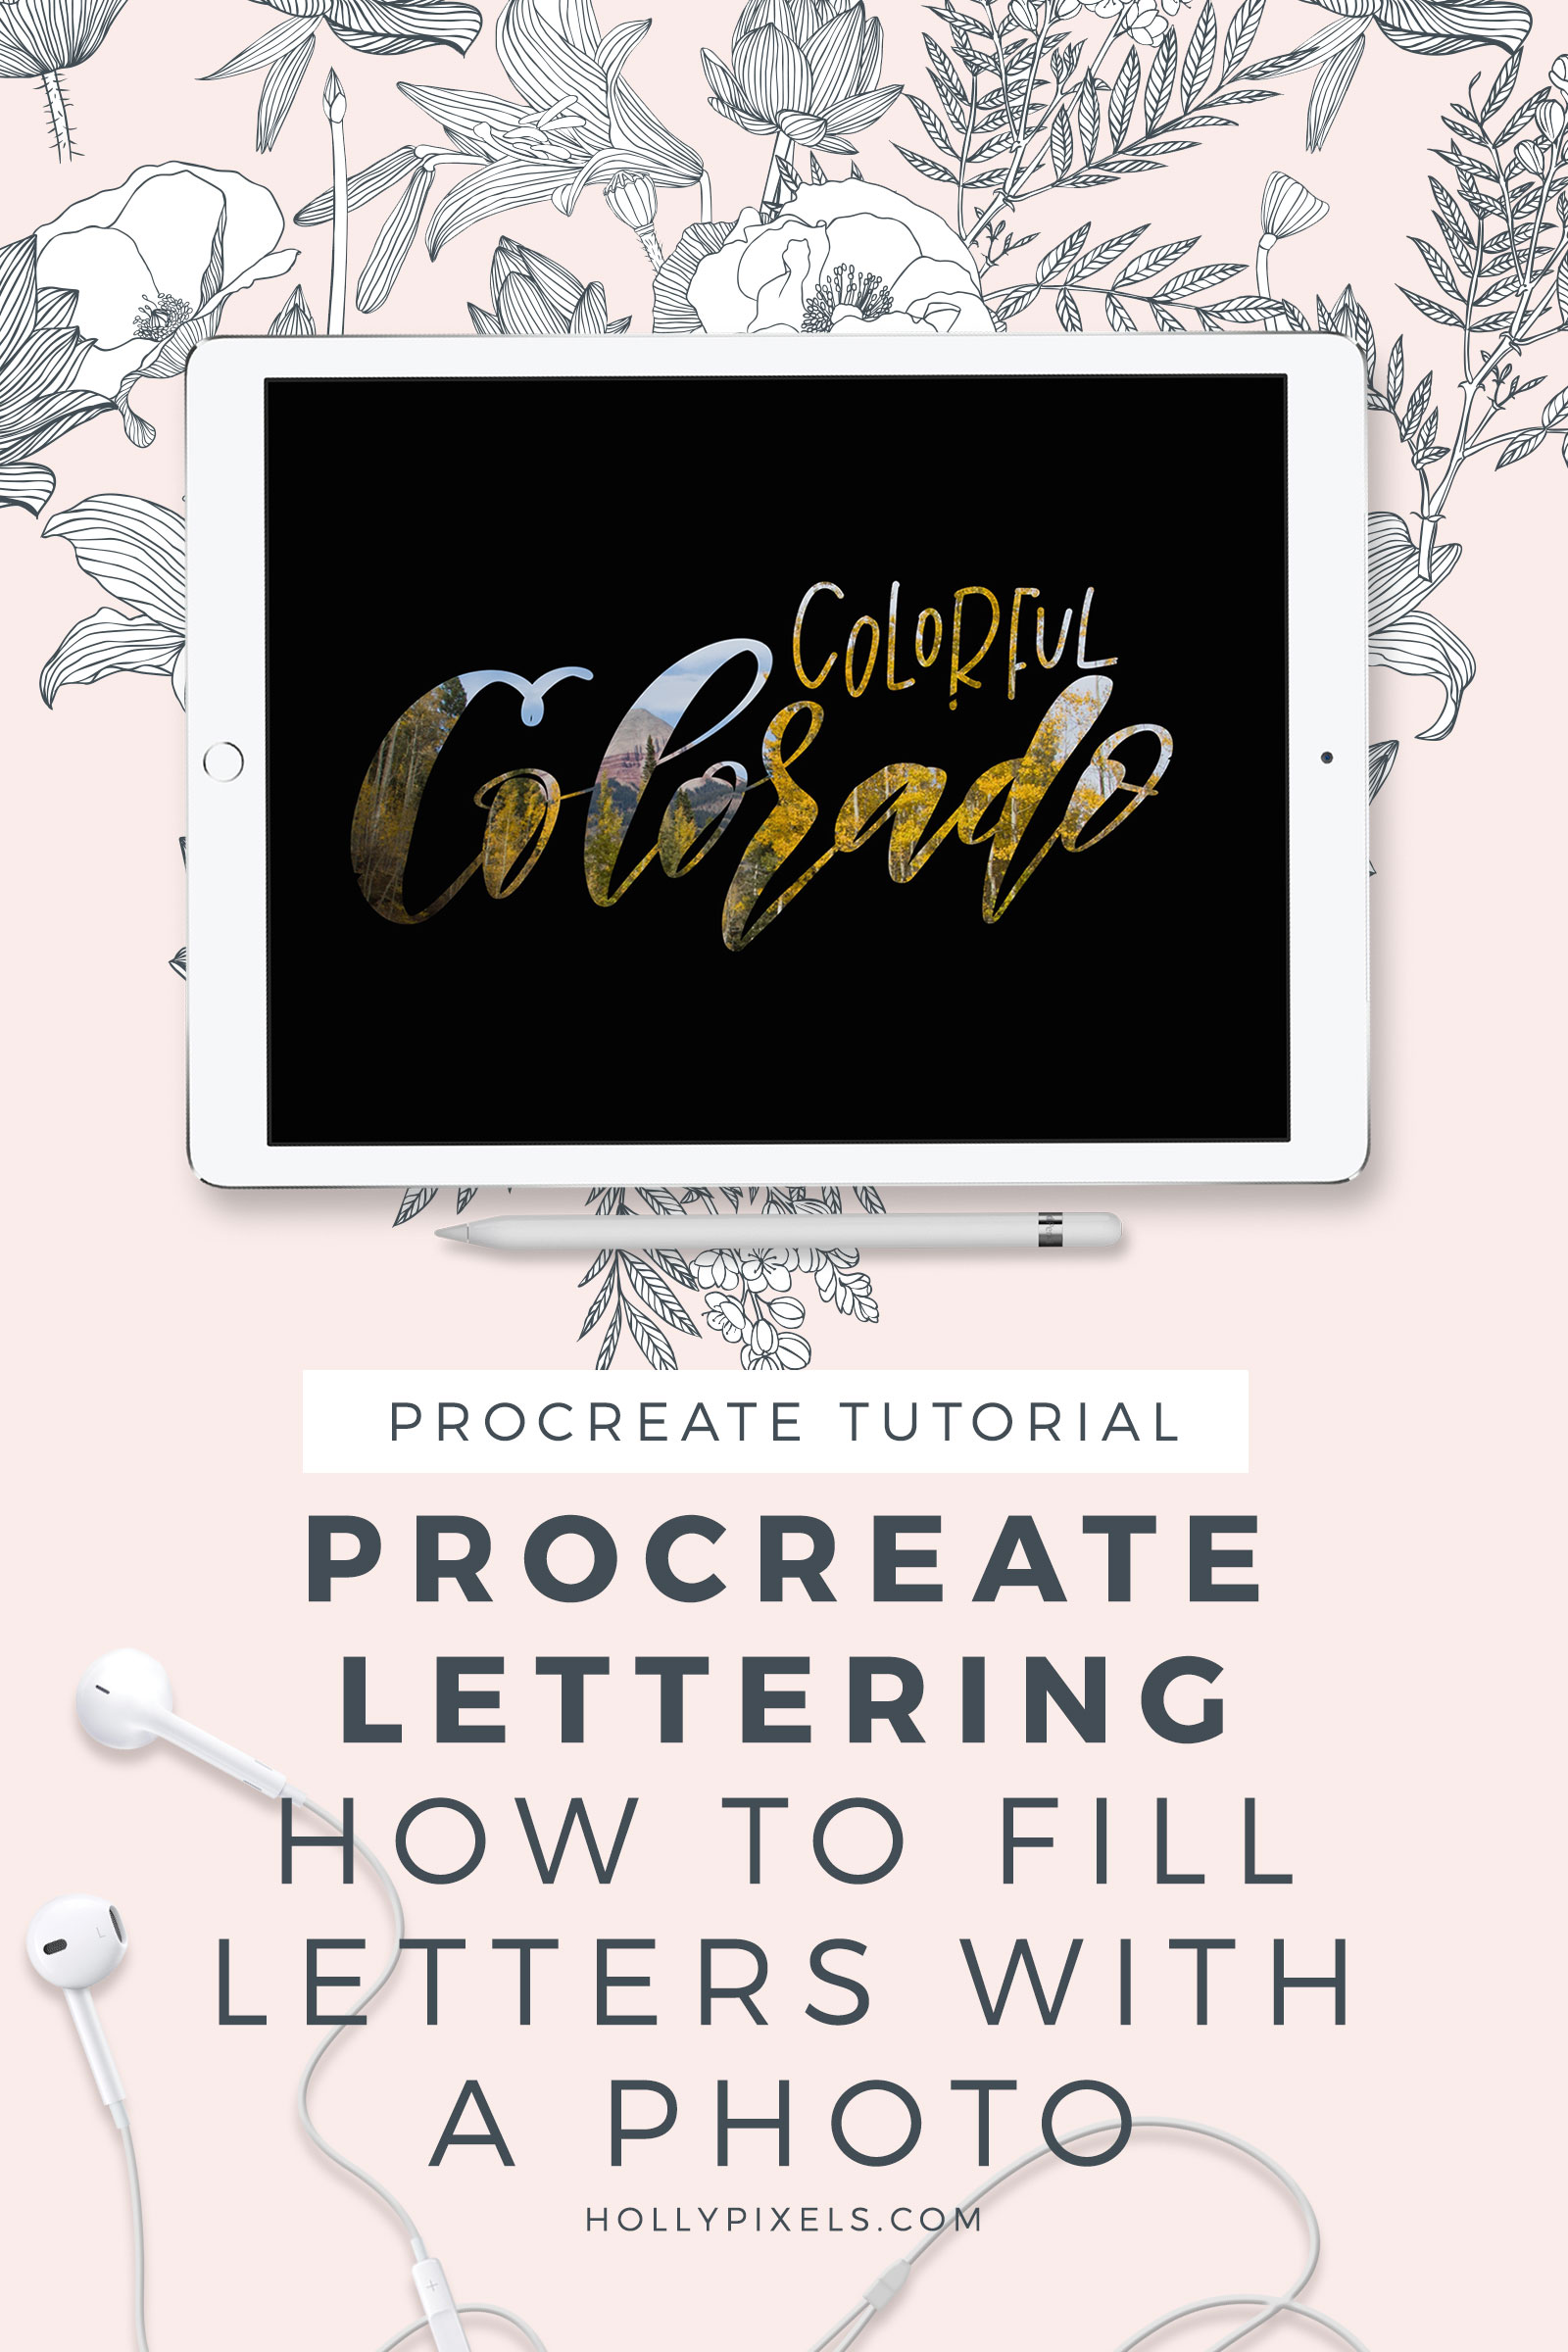 This week's Procreate Saturday is a Procreate Tutorial! Learn how to fill letters with a photo in Procreate with me, Holly Pixels. This is a super fast and easy tutorial for you iPad Lettering to look really unique.